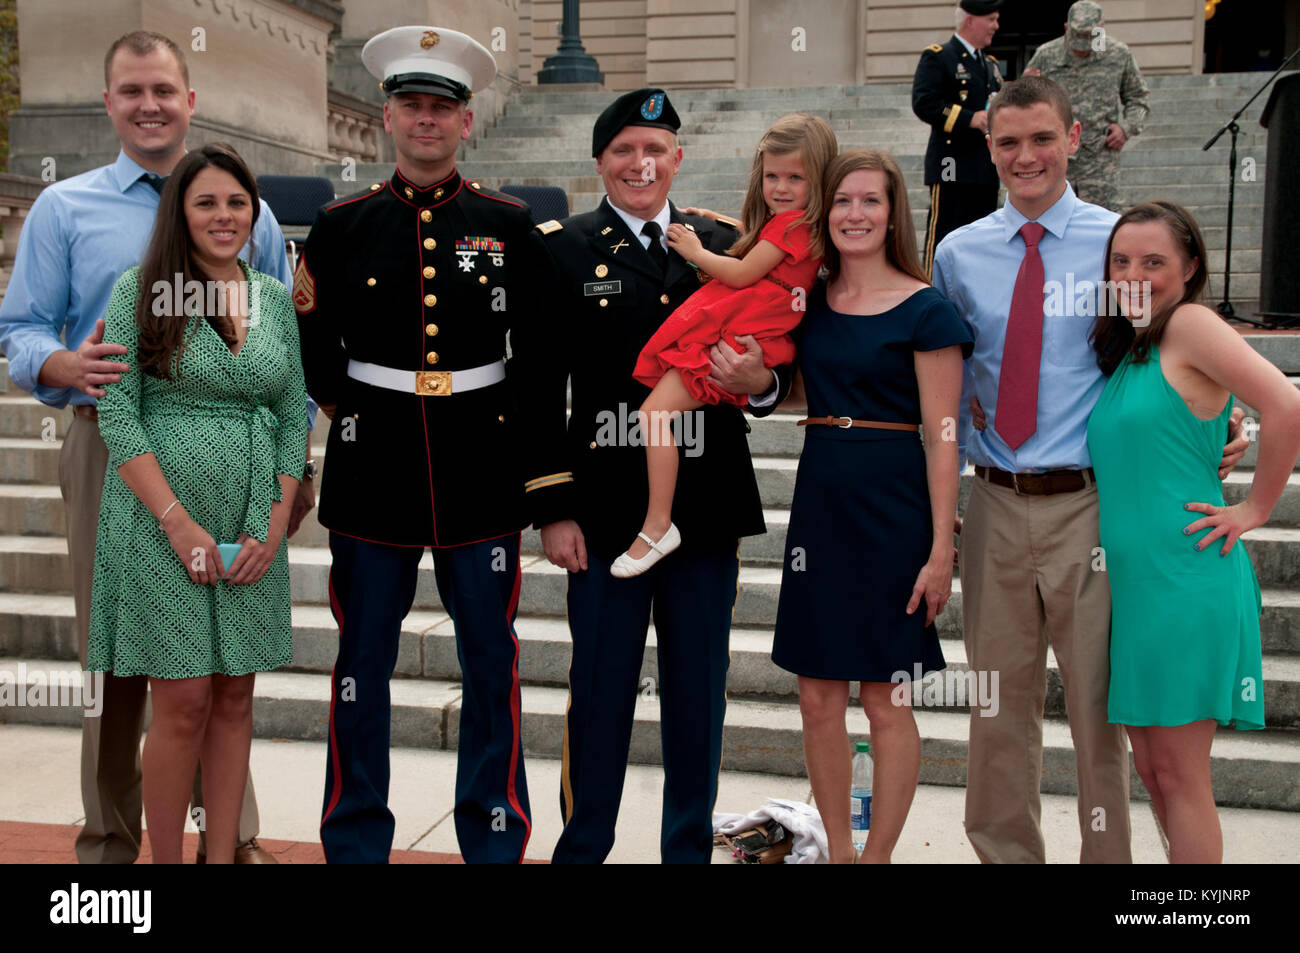 Newly promoted 2nd Lt. Benjamin R. Smith (center) poses with his family and friends after the completion of his - Stock Image